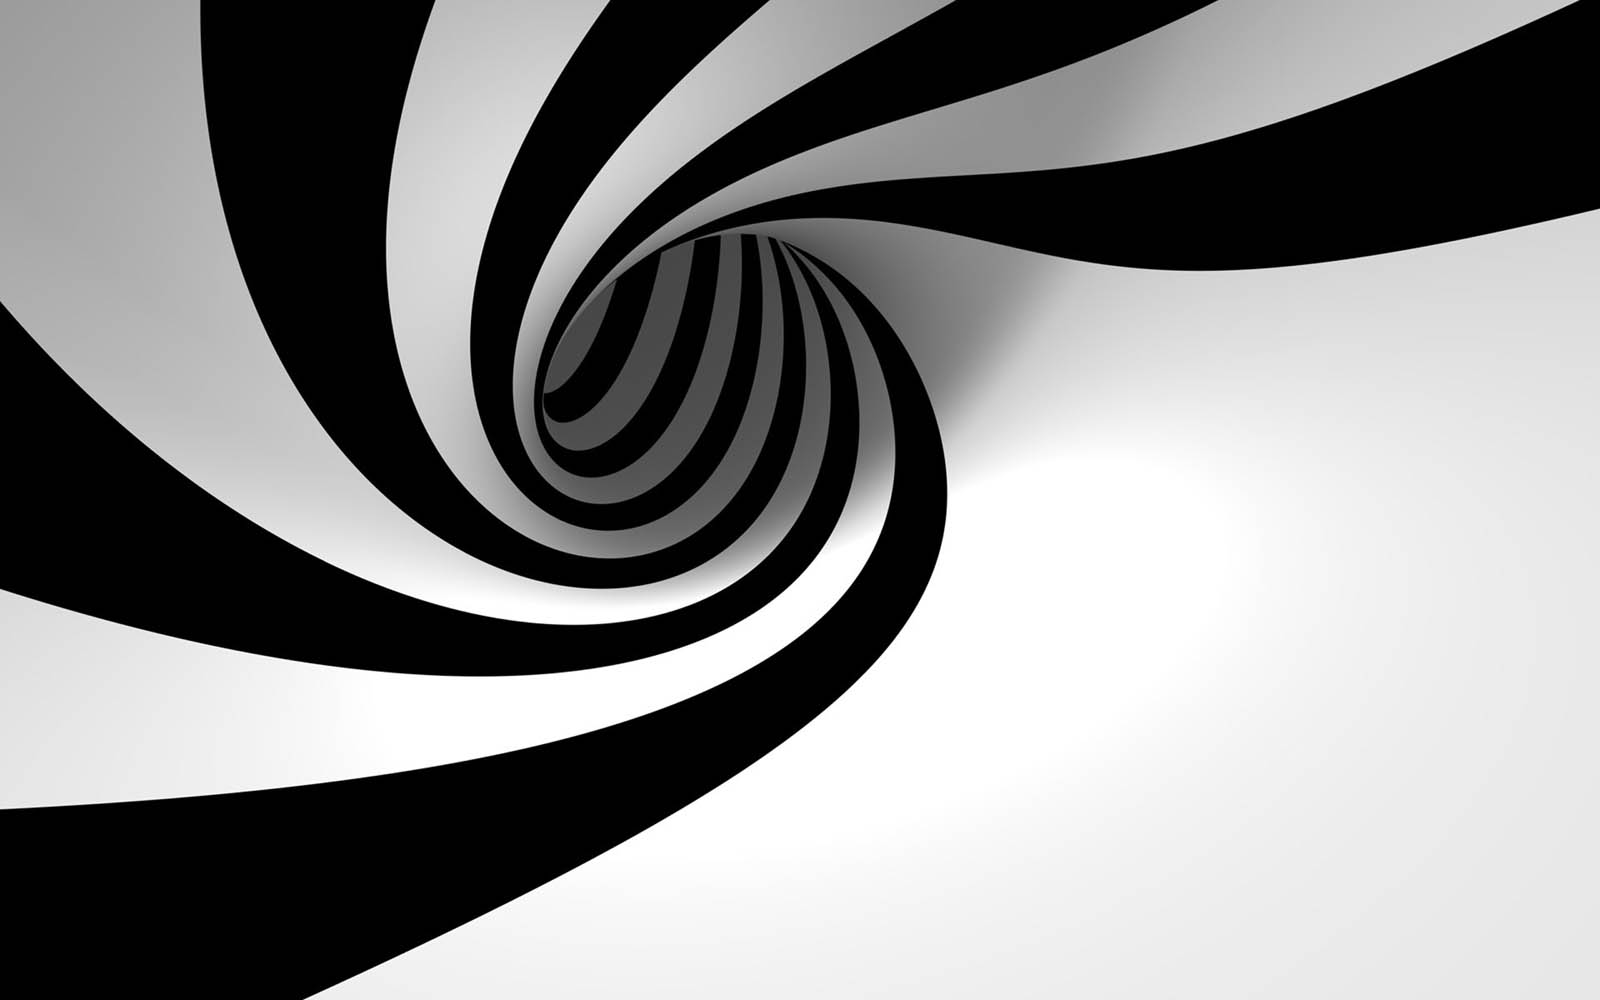 New 3d Hd Wallpaper Free Download Wallpapers 3d Graphic Spiral Wallpapers